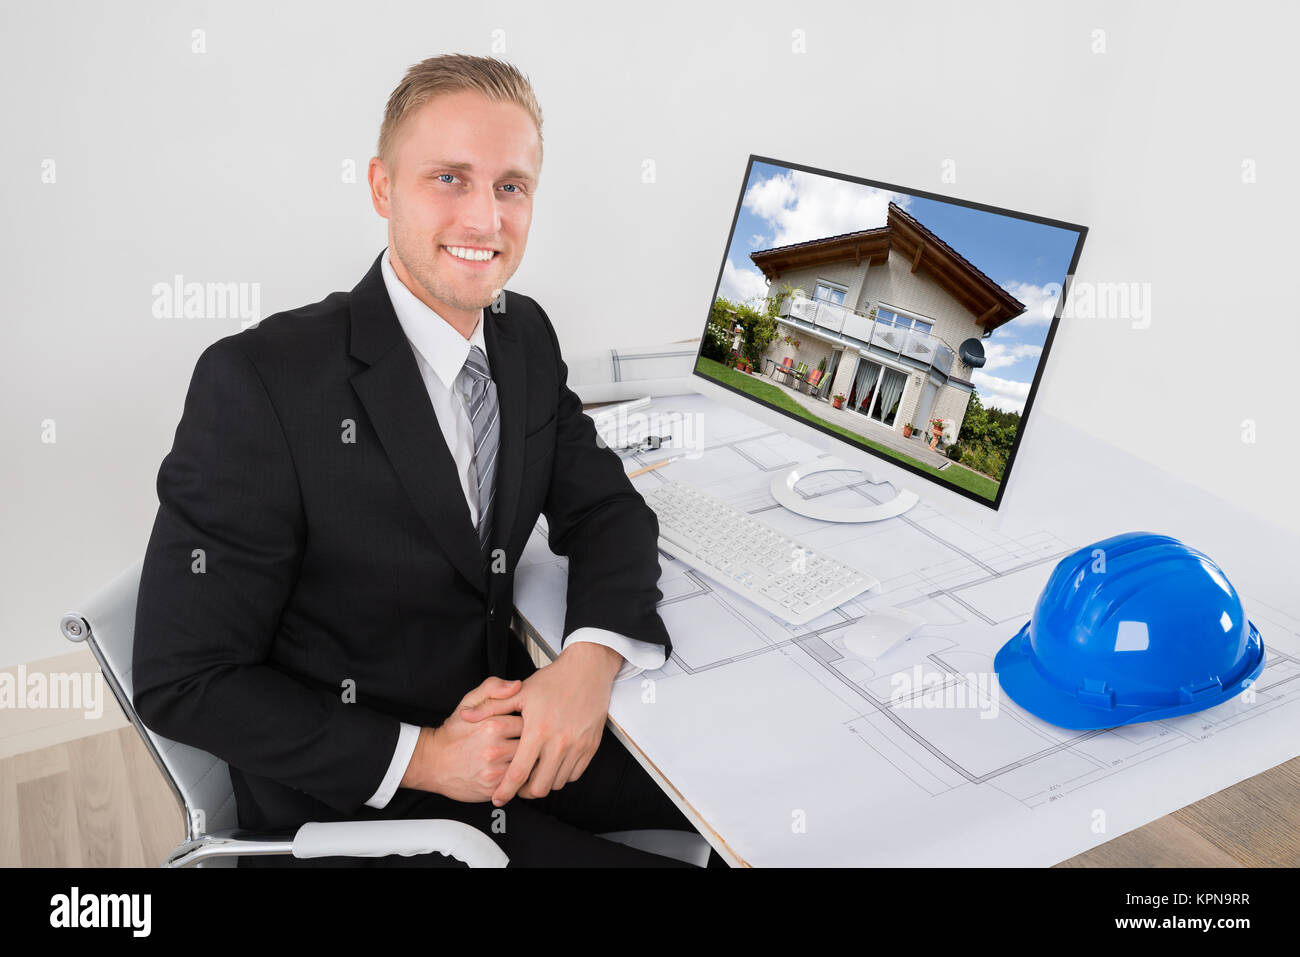 happy architect smiling at work stock photo 168884459 alamy